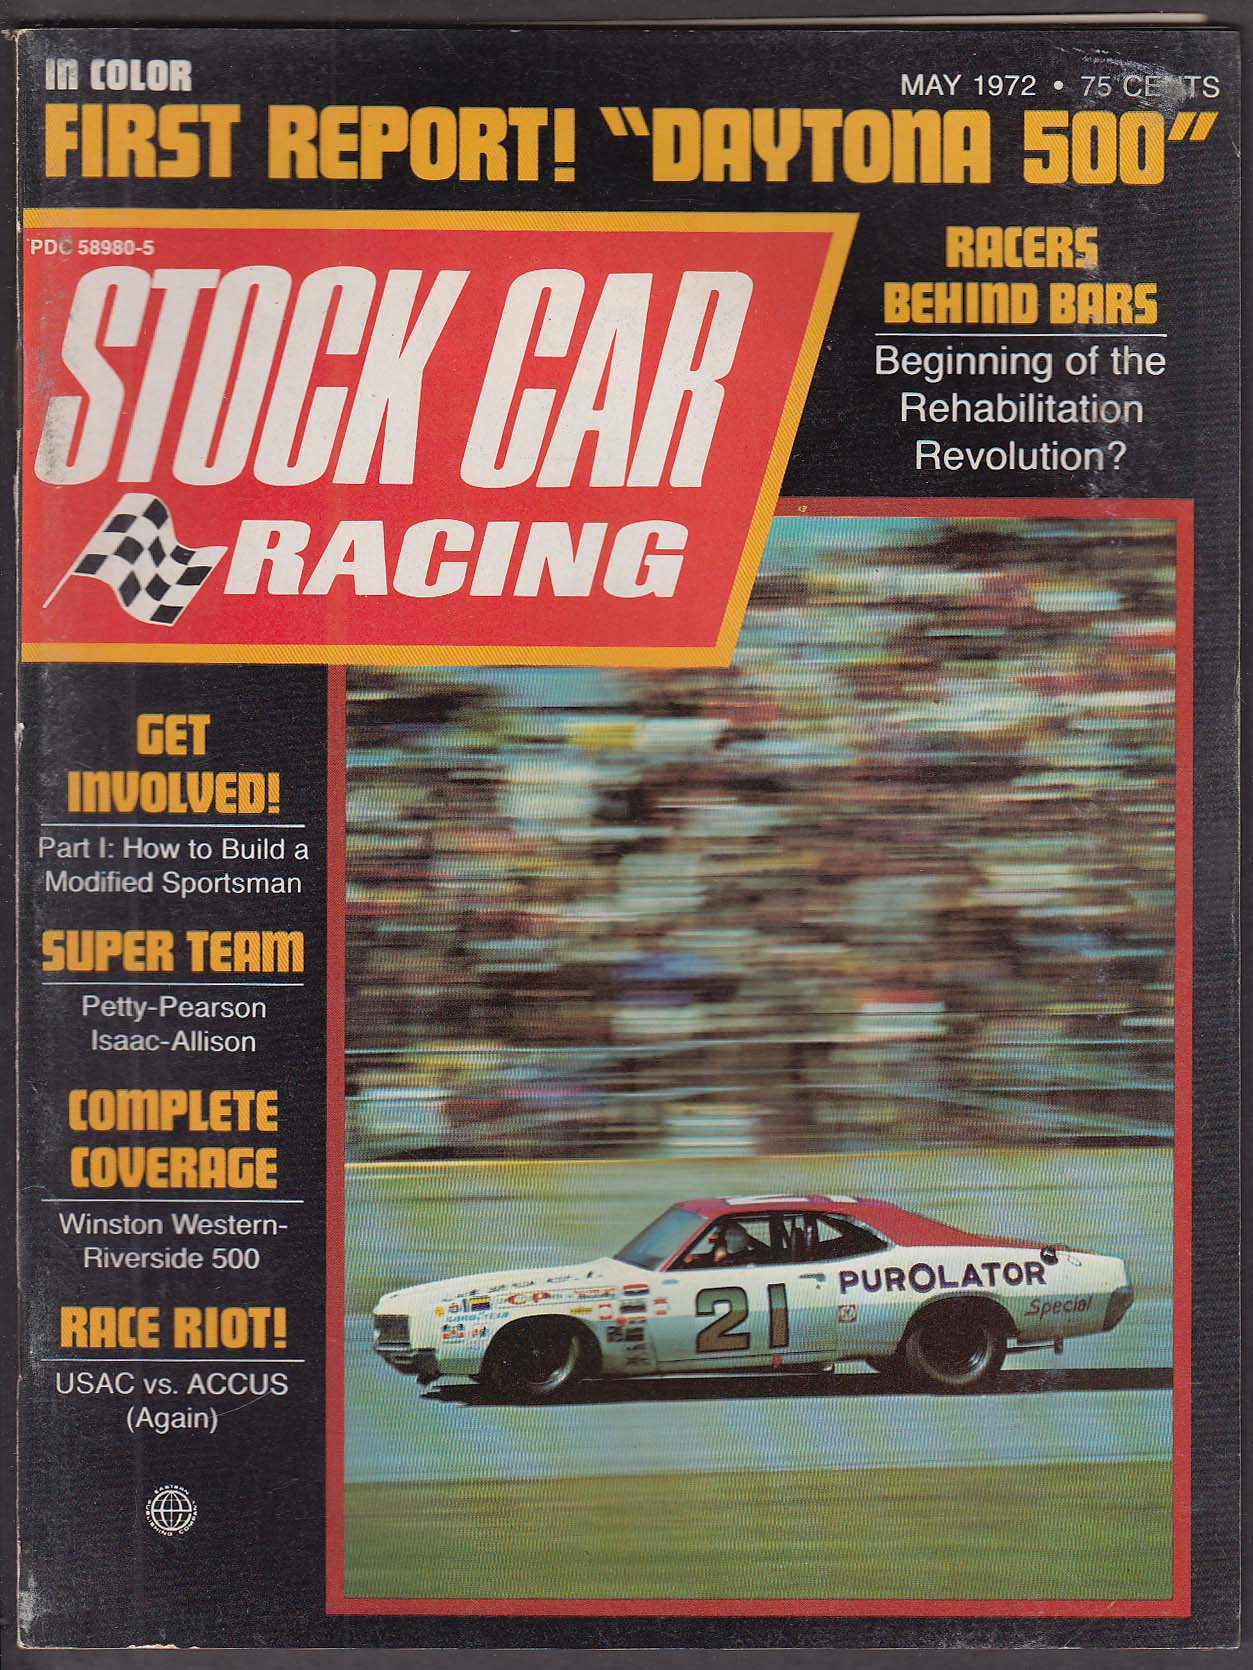 STOCK CAR RACING Daytona Don Diffindorf Winston Western-Riverside 500 ++ 5 1972